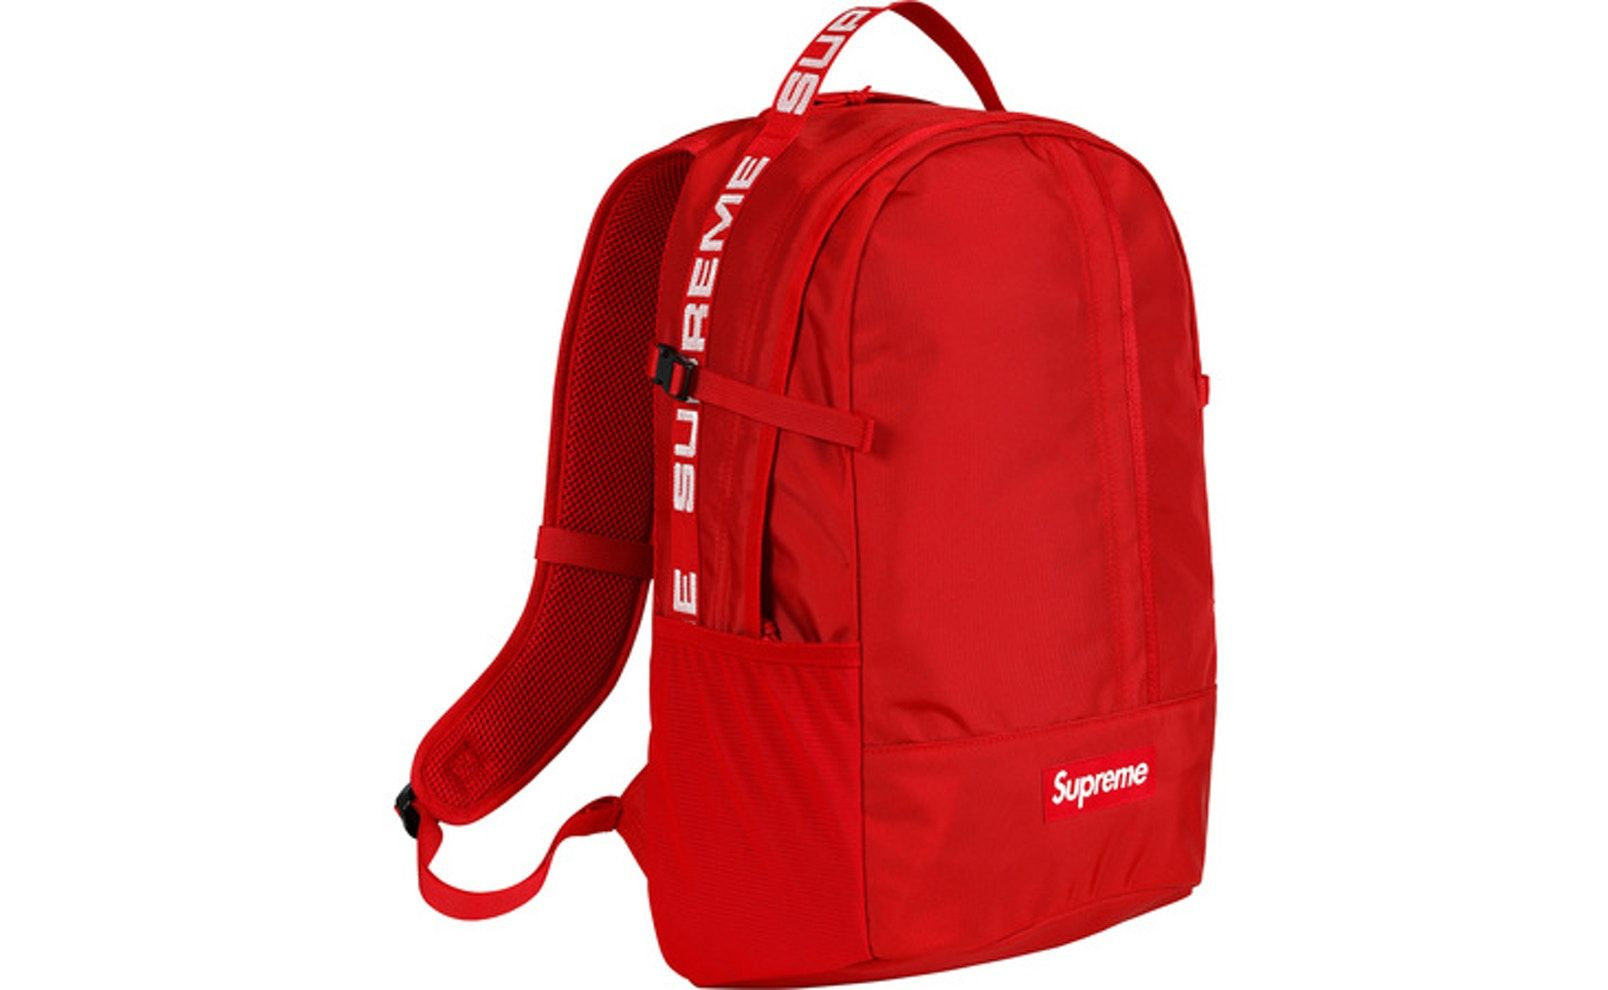 7d233b0e Check out the Supreme Backpack (SS18) Red available on StockX ...